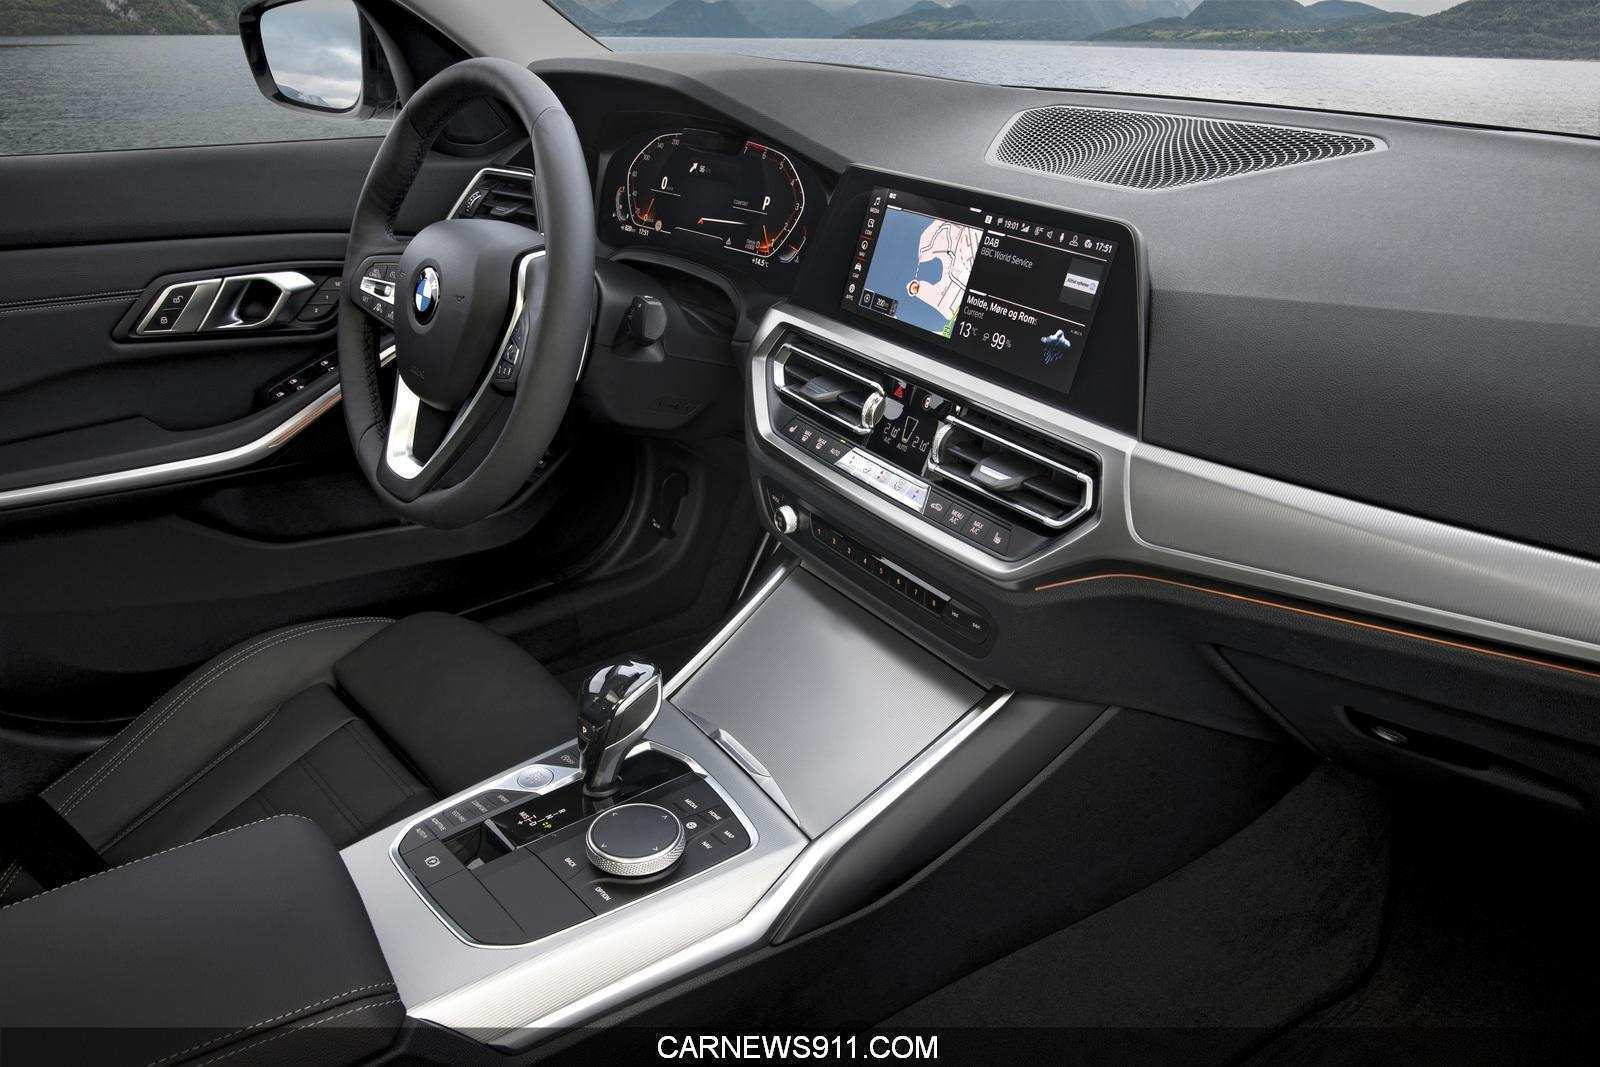 55 Concept of 2019 Bmw 3 Series Manual Transmission New Review by 2019 Bmw 3 Series Manual Transmission